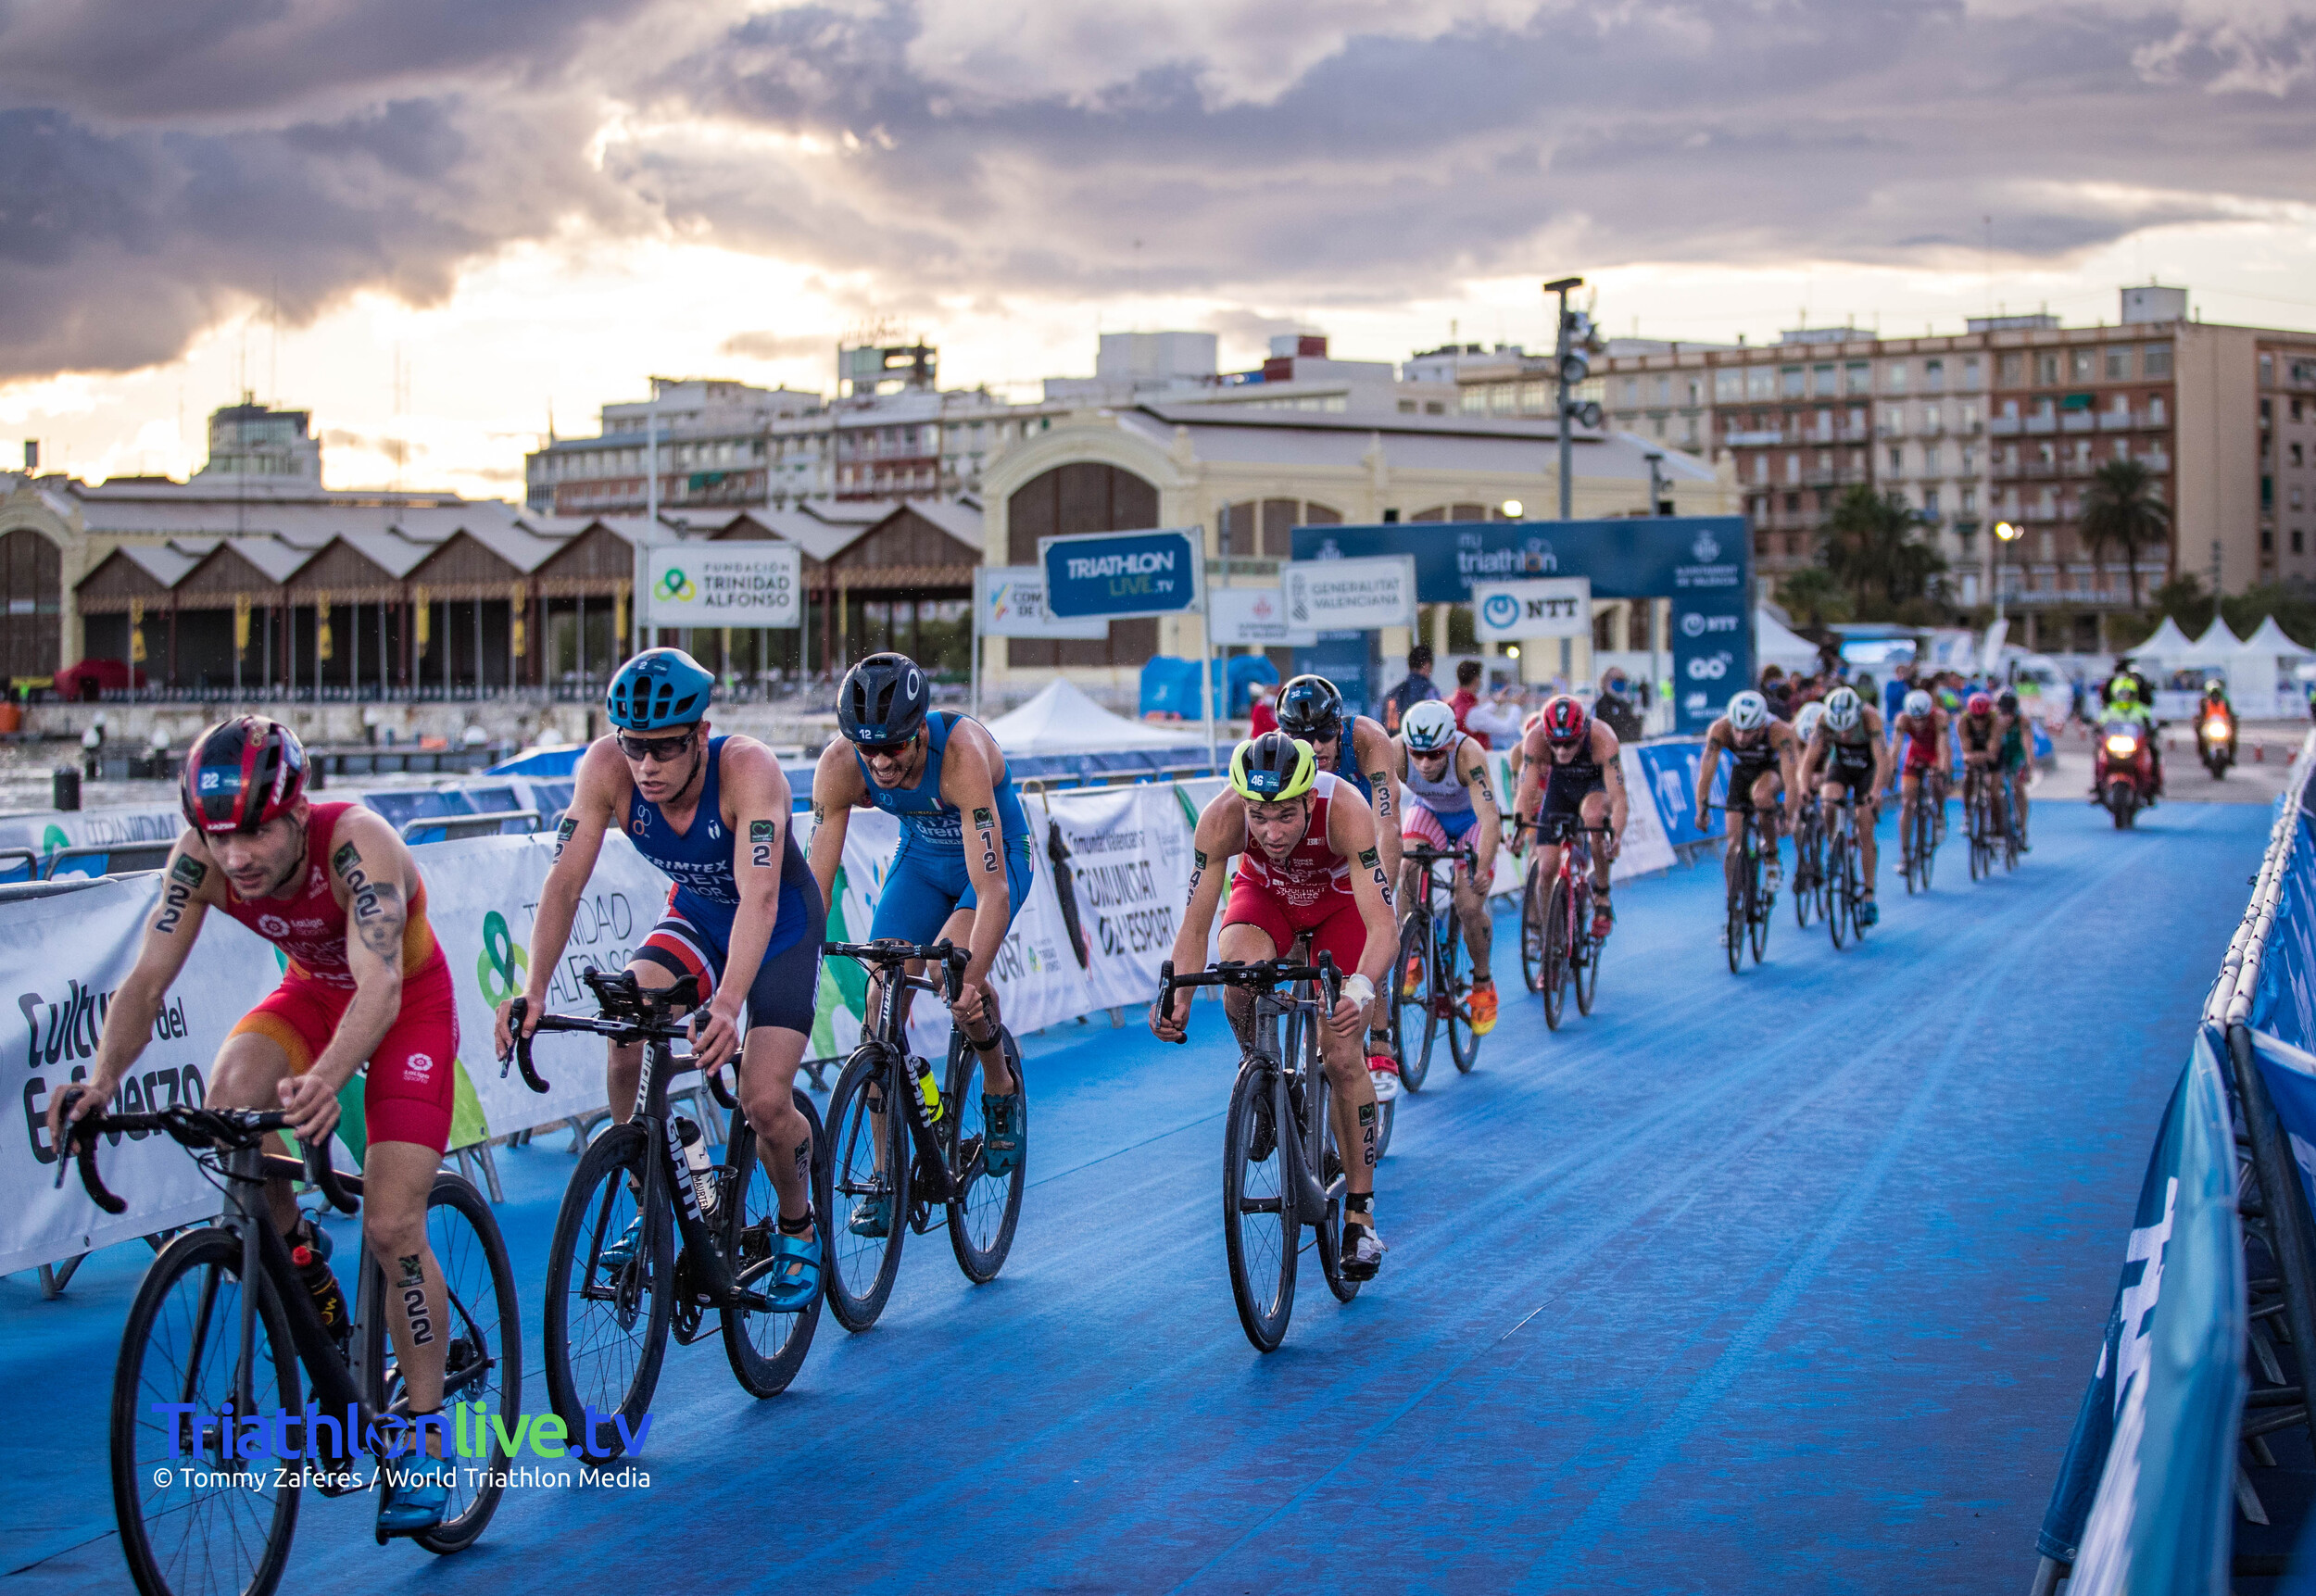 Triathlon-EM Ende September in Valencia